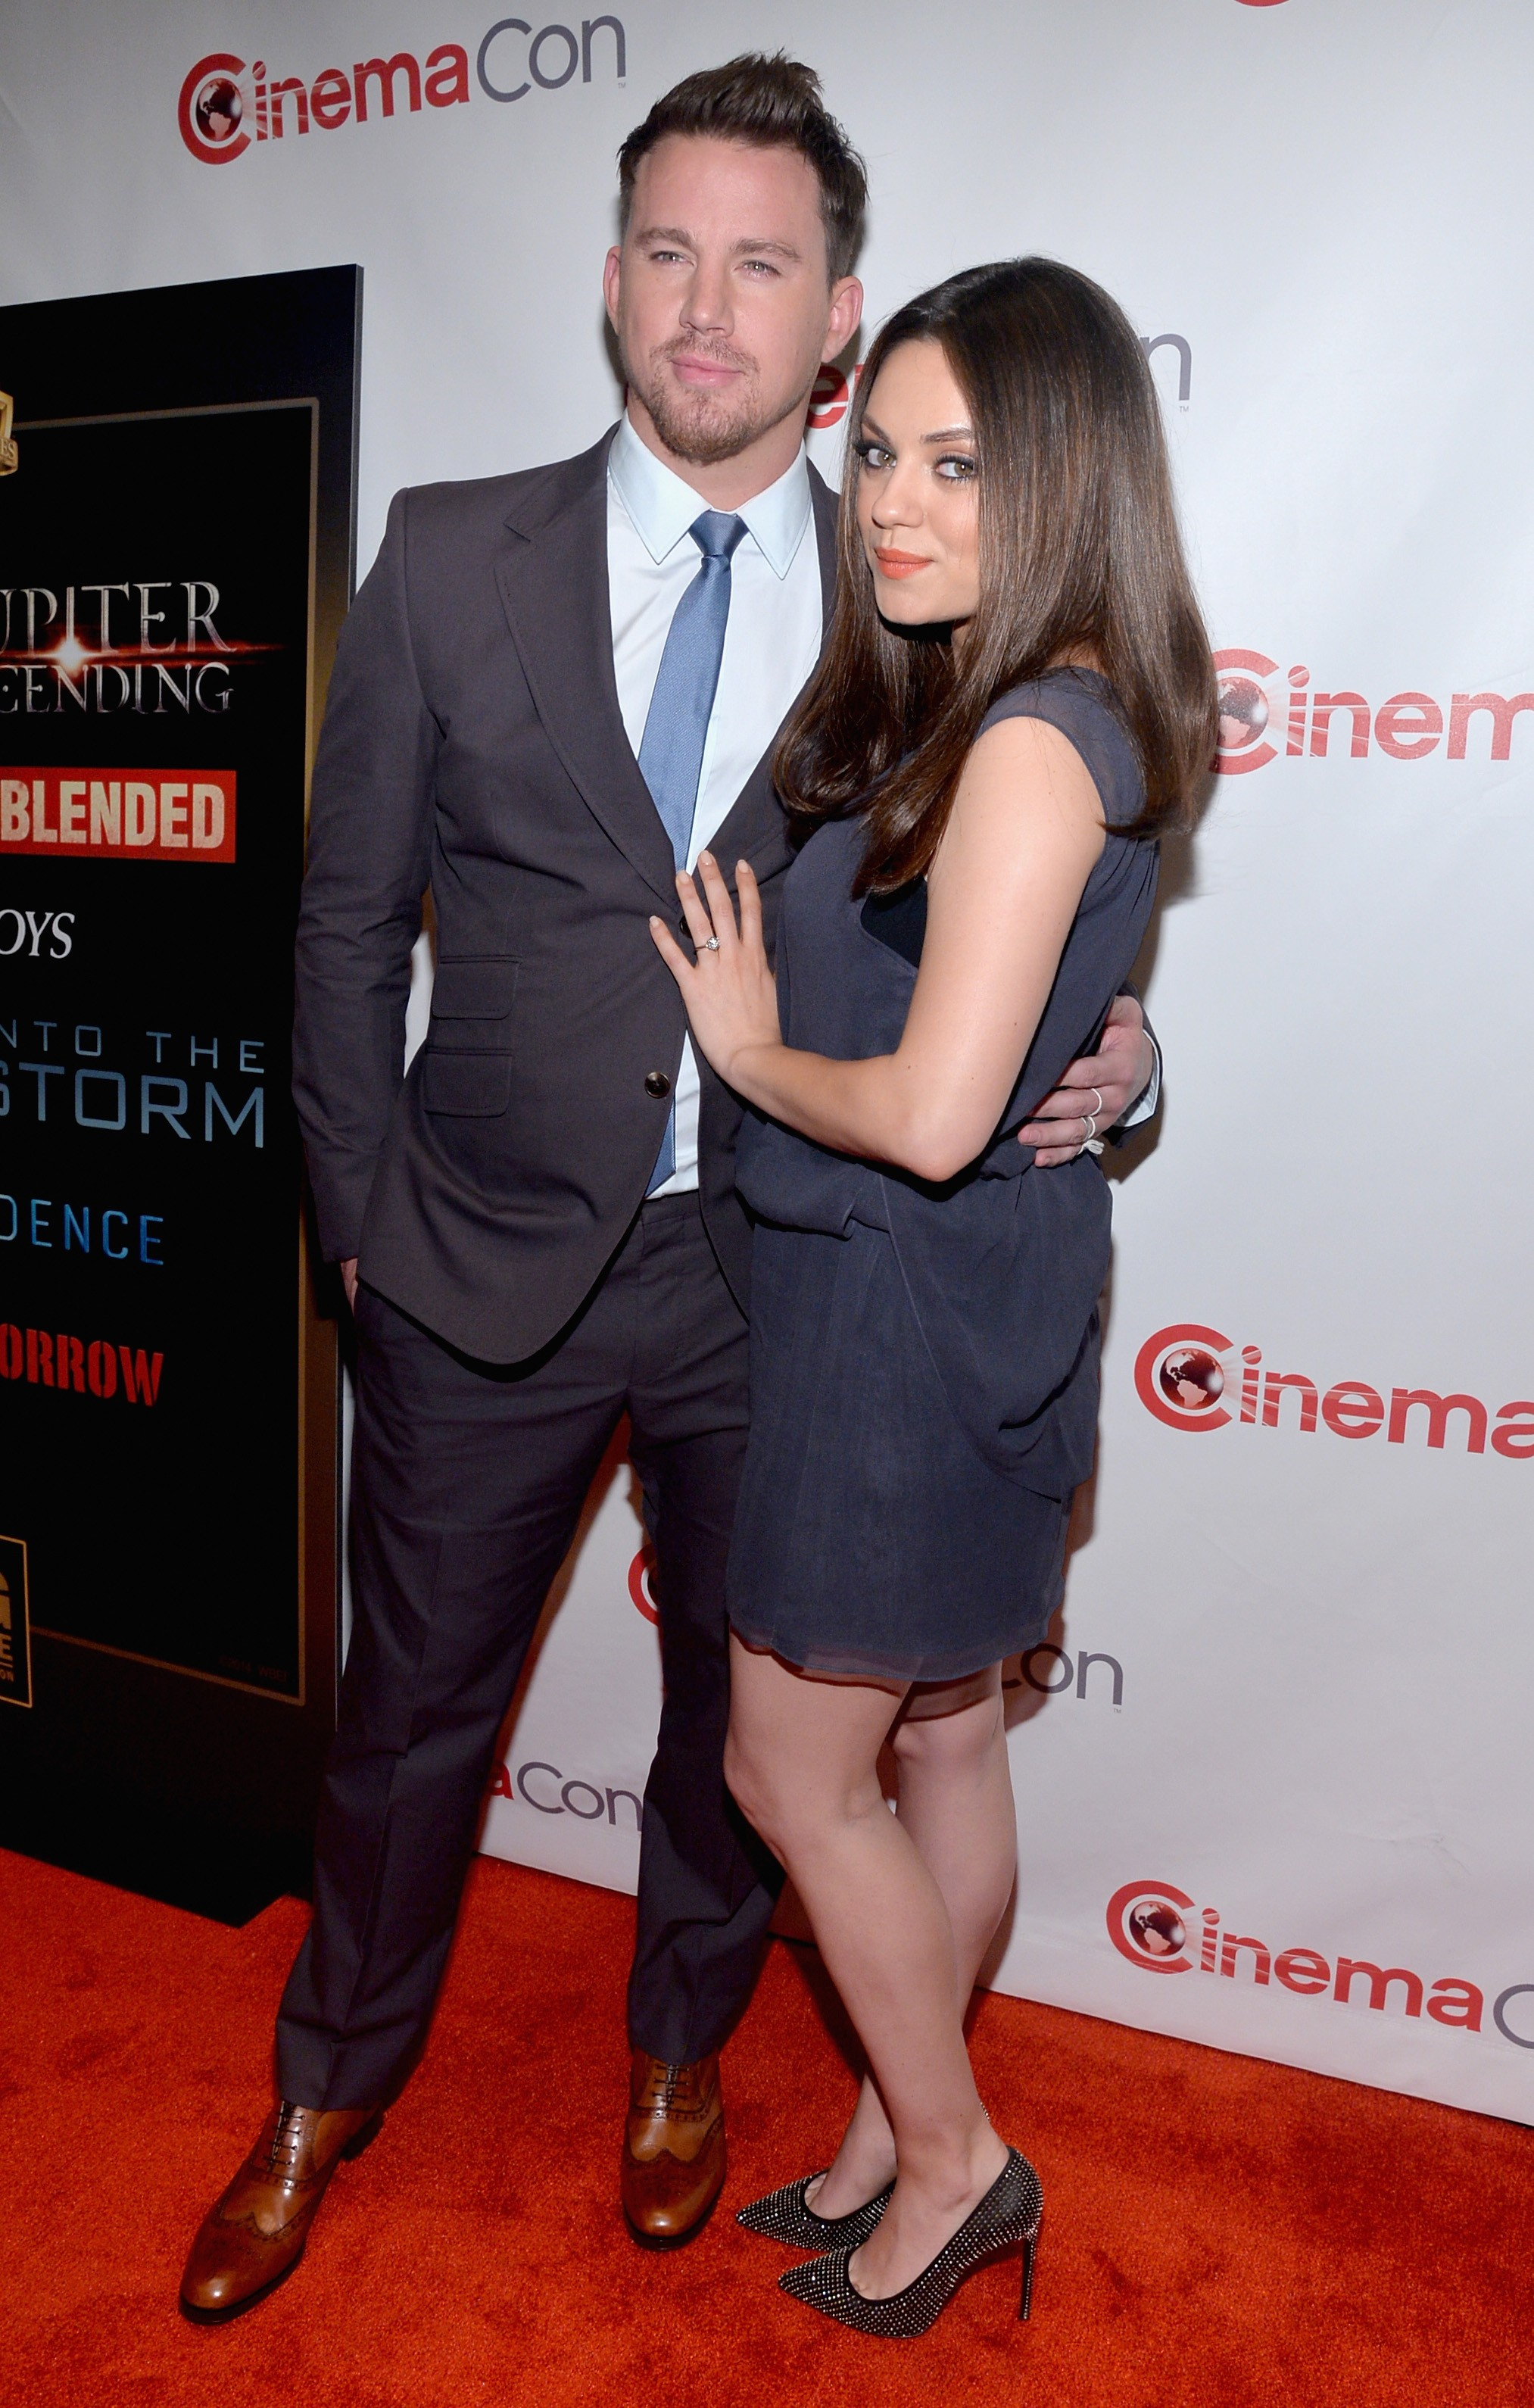 Channing Tatum e Mila Kunis (Foto: Getty Images)